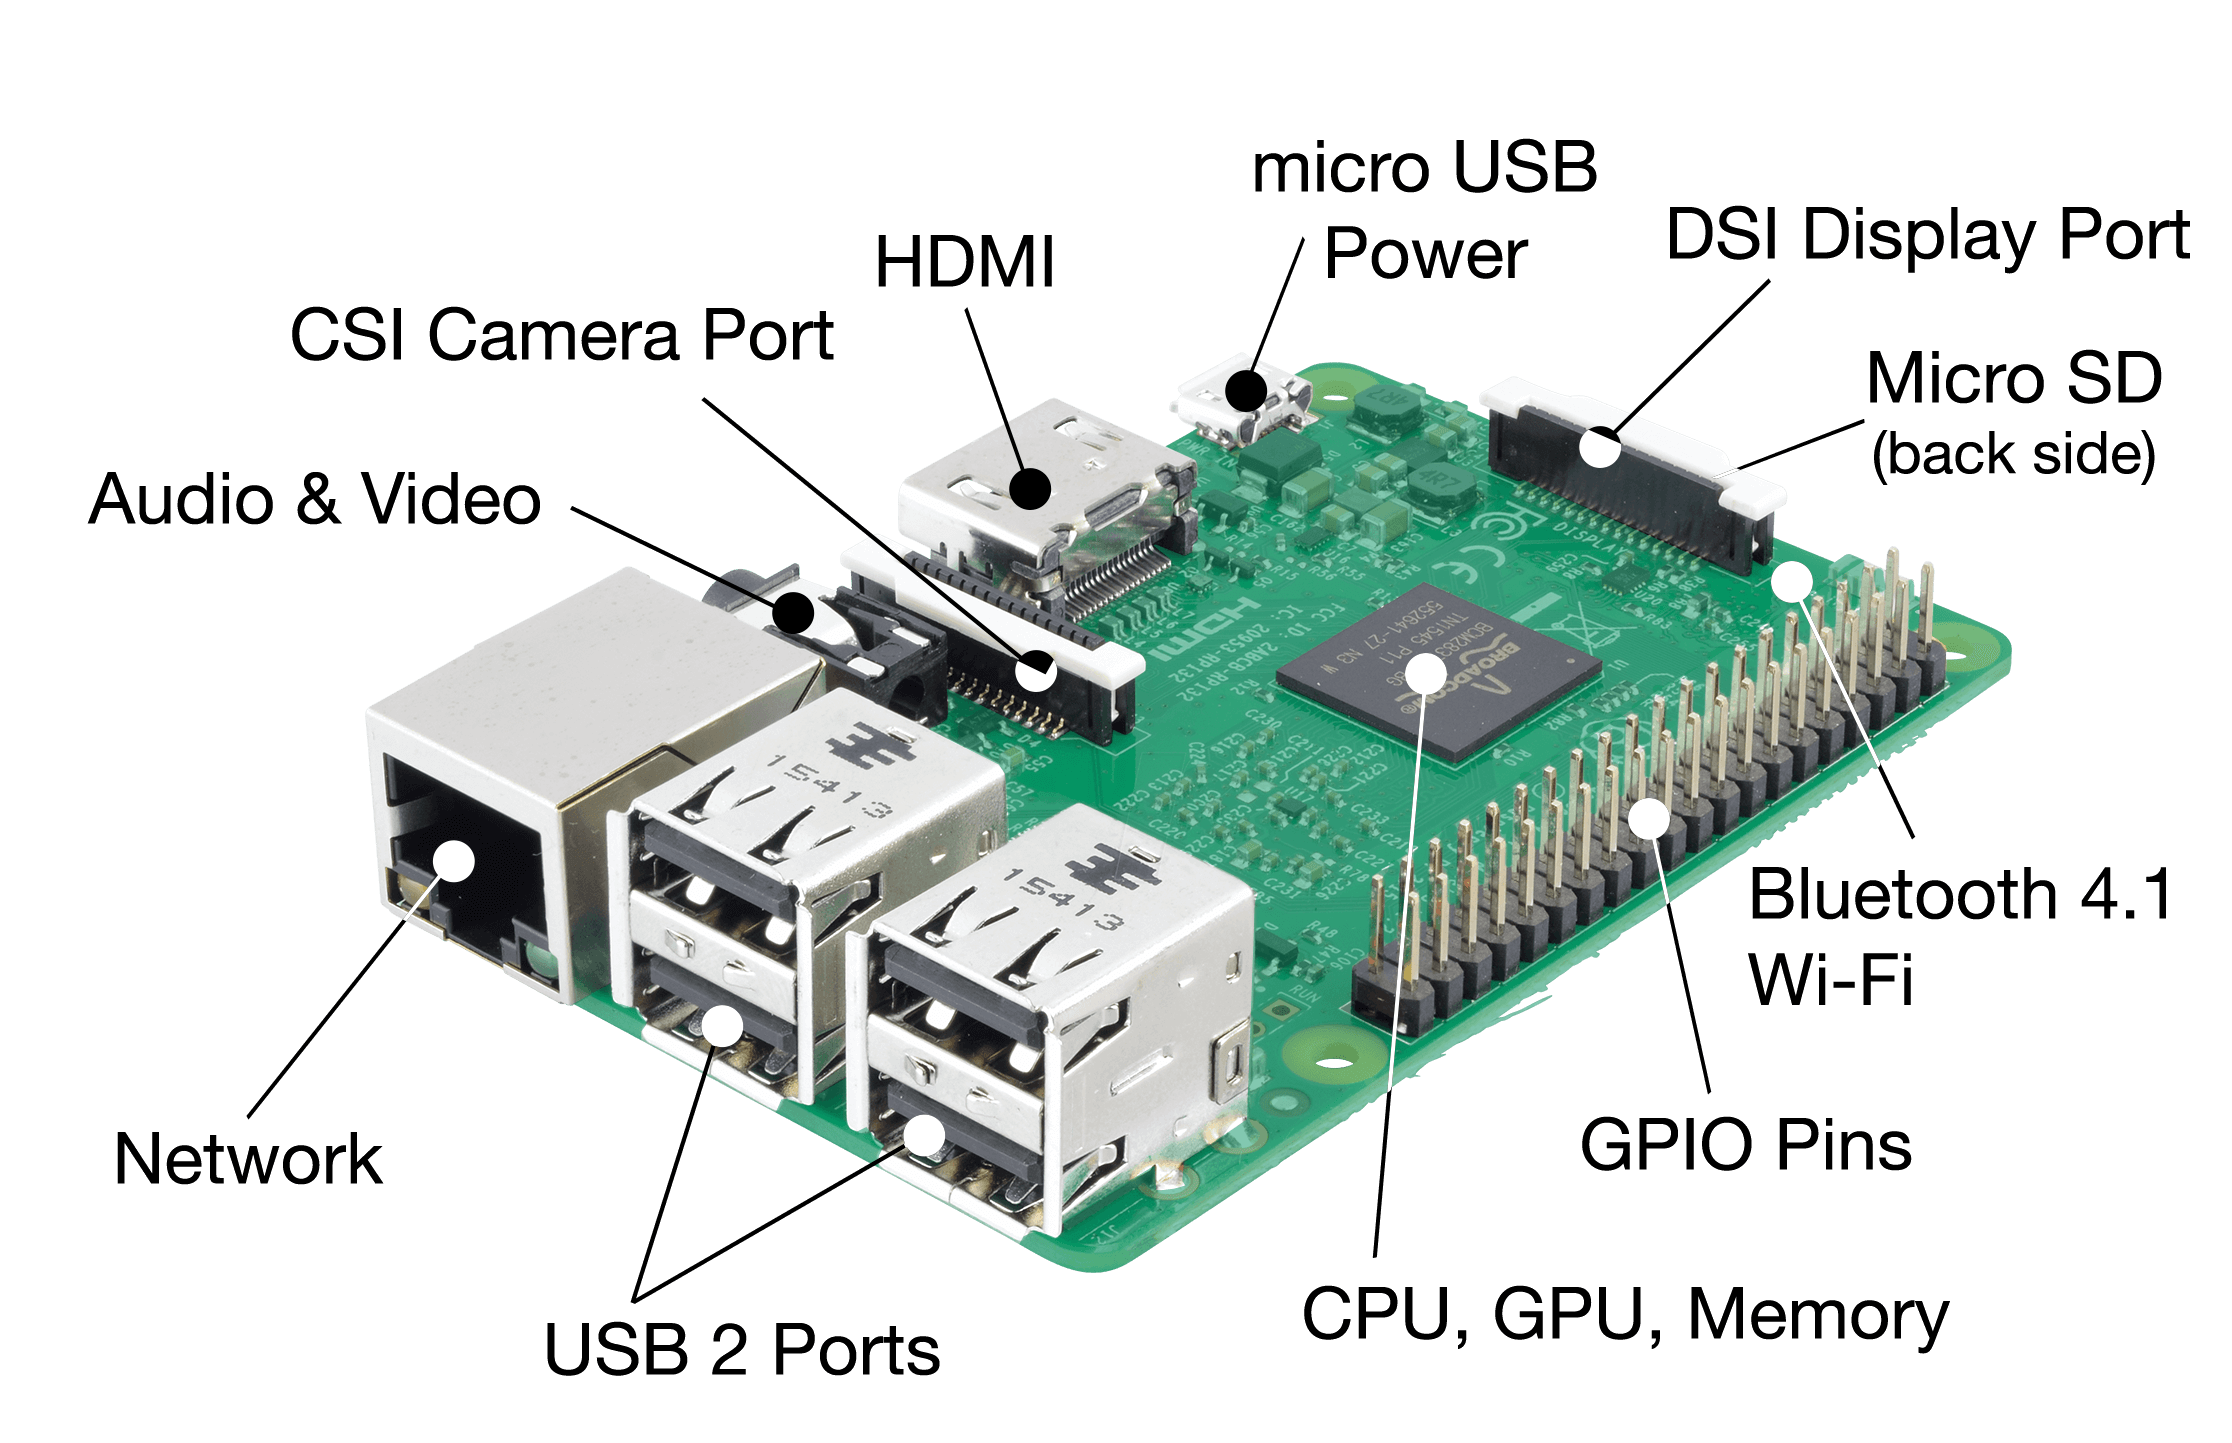 Intel Edison Vs Raspberry Pi 3 Which One Is Better For Beginners The B Circuit Board